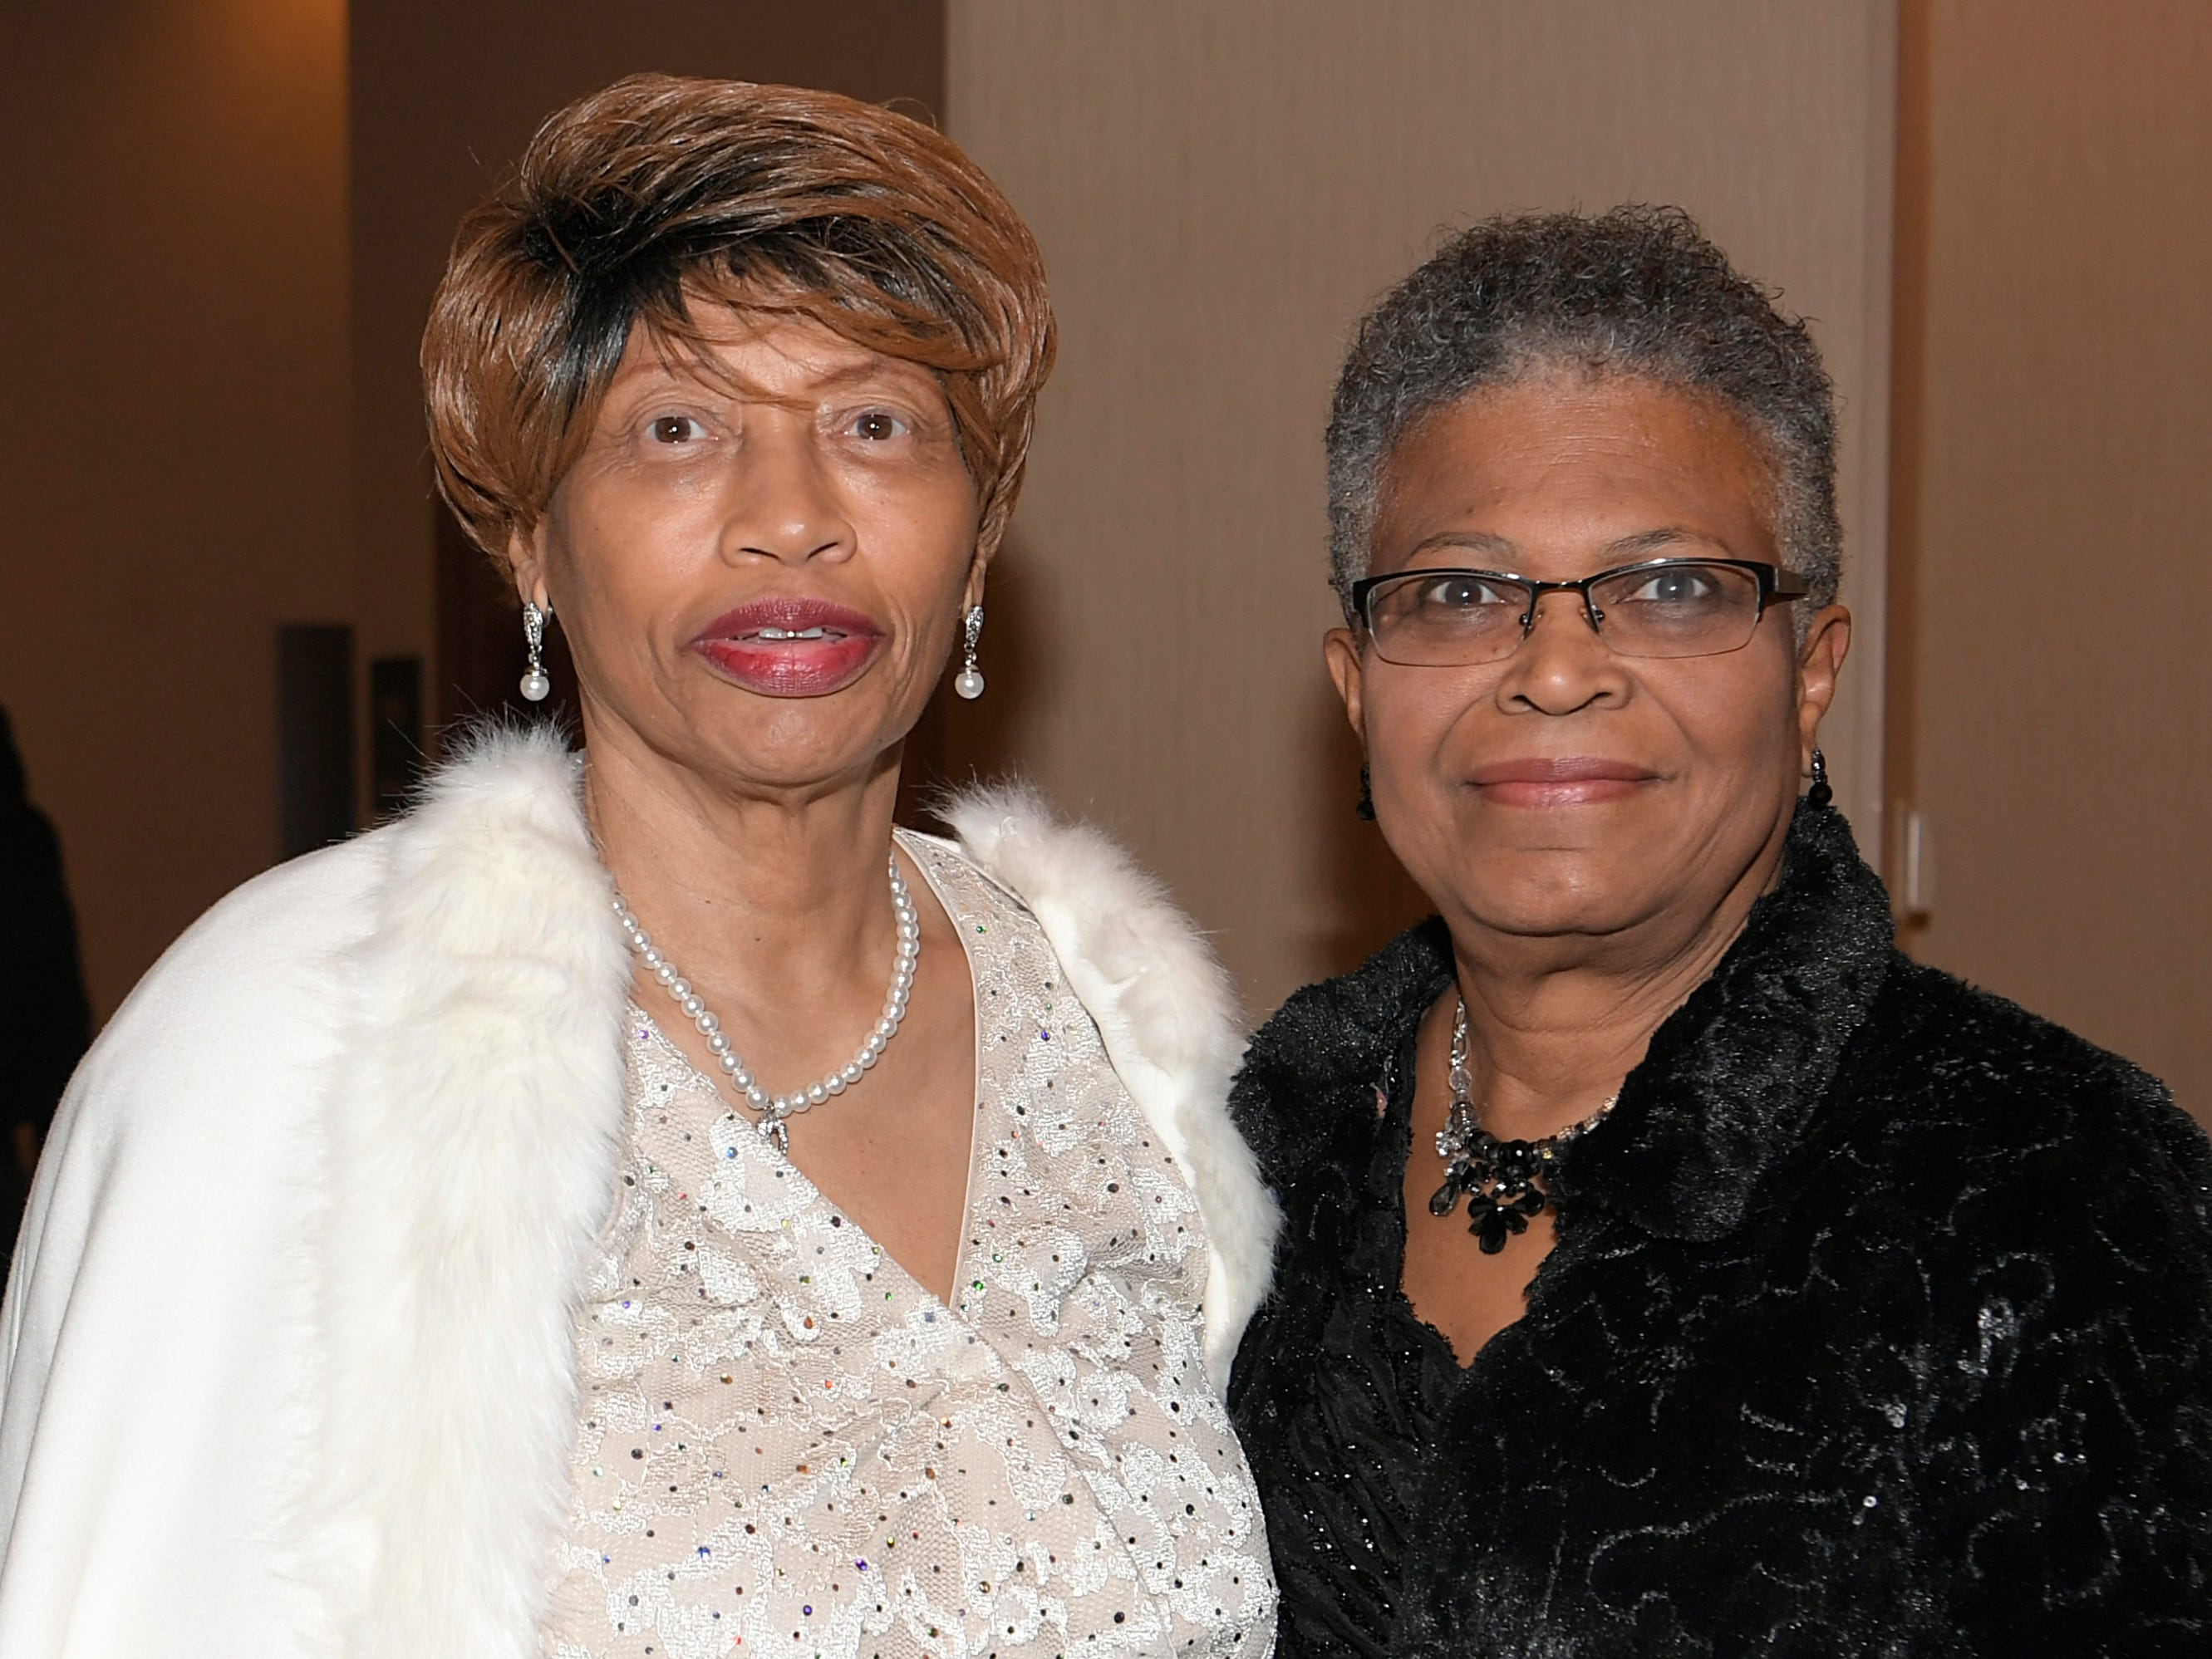 Josie Jones and Louise Peoples Anderson at the African American Heritage Society's 18th Annual Black Tie Affair at the Embassy Suites in Franklin on Sat., Feb. 2, 2019.